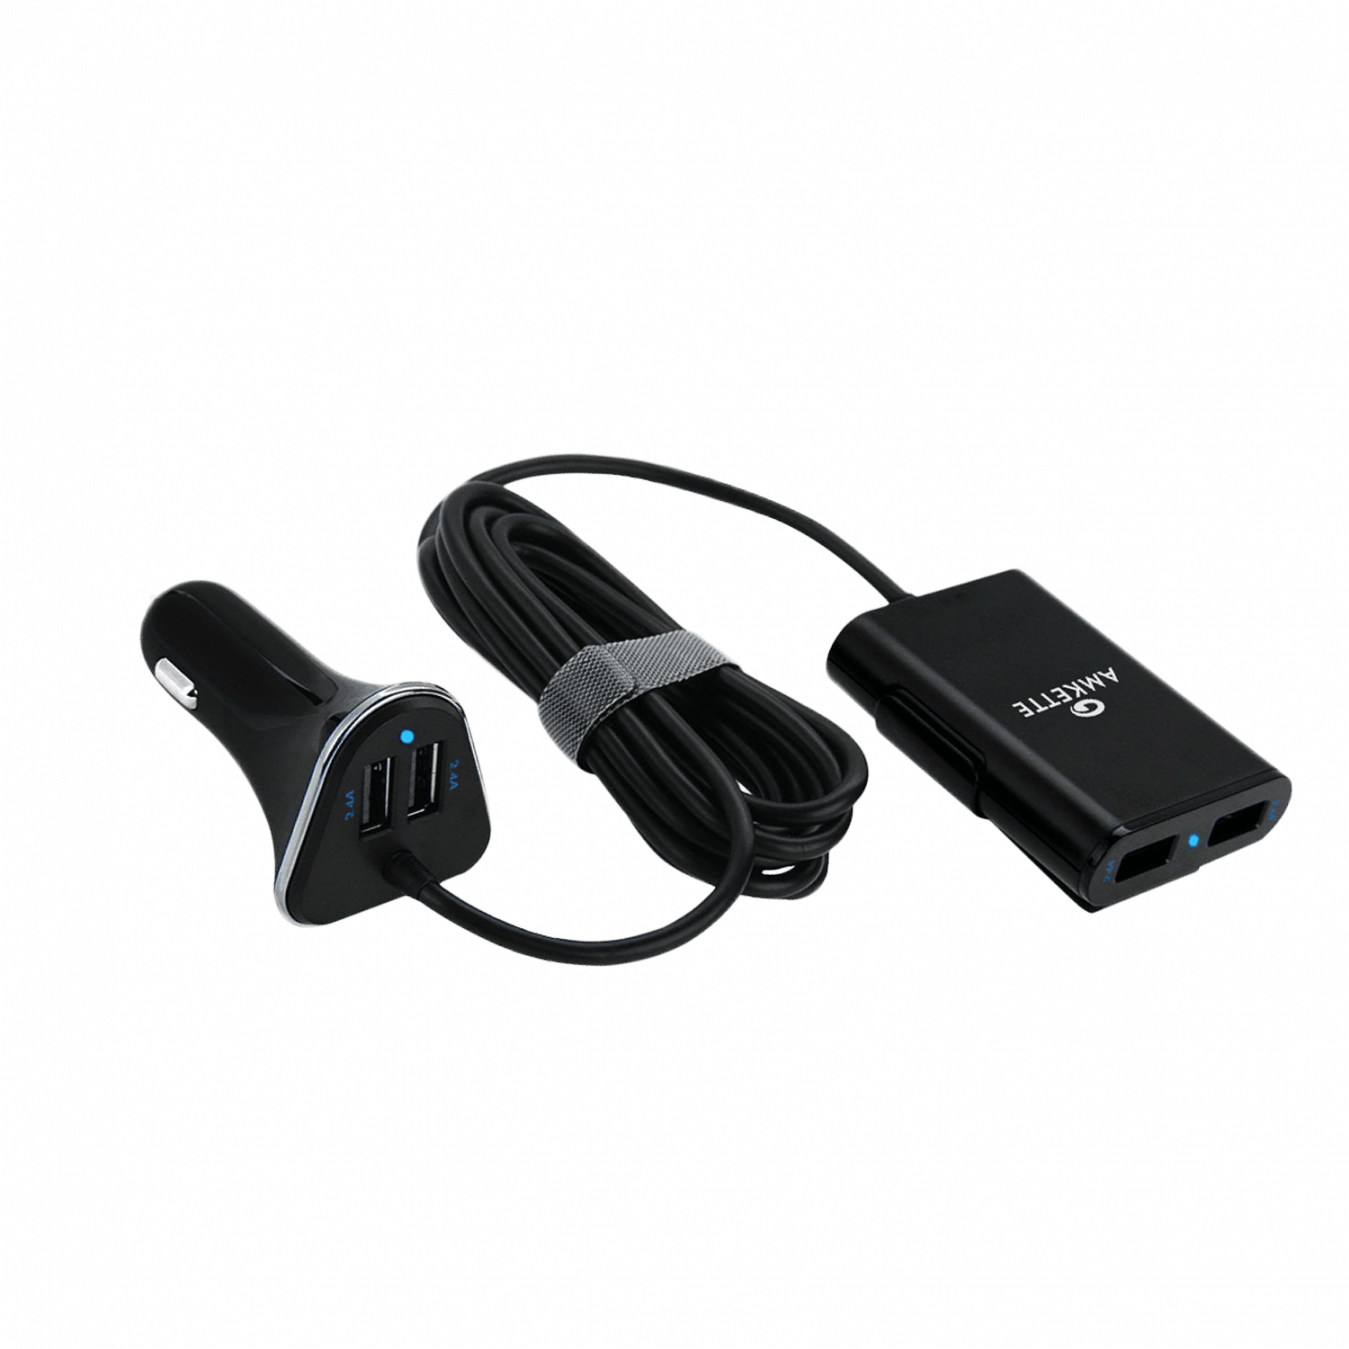 Rapid 4 Port 9.6A Family Car Charger